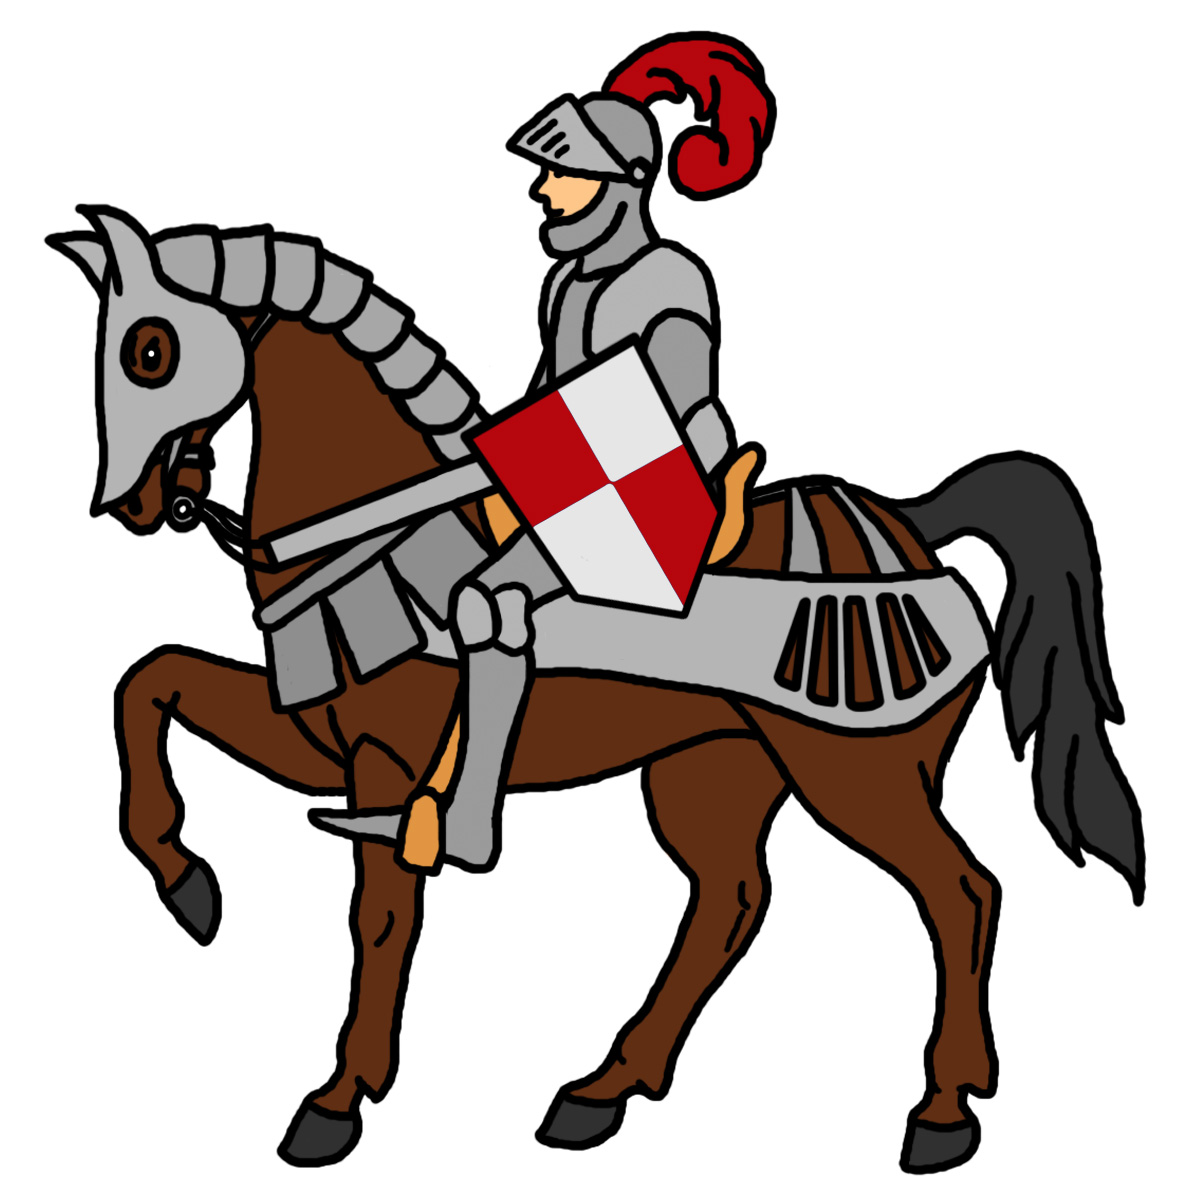 Knight clipart #7, Download drawings